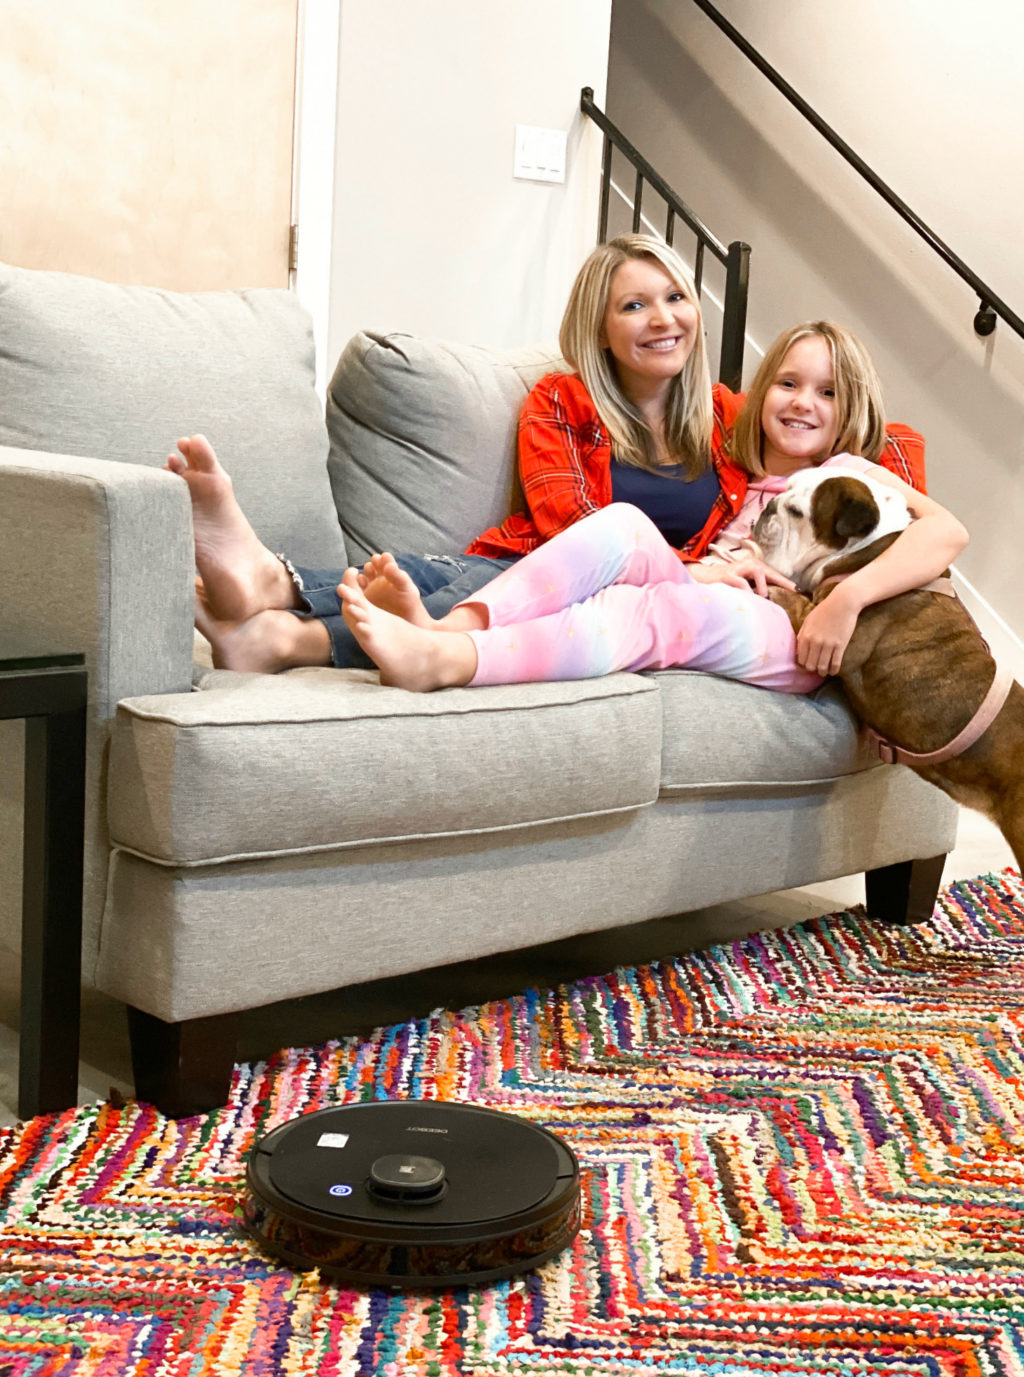 Mom and daughter on couch with dog on colorful rug and robotic vacuum.